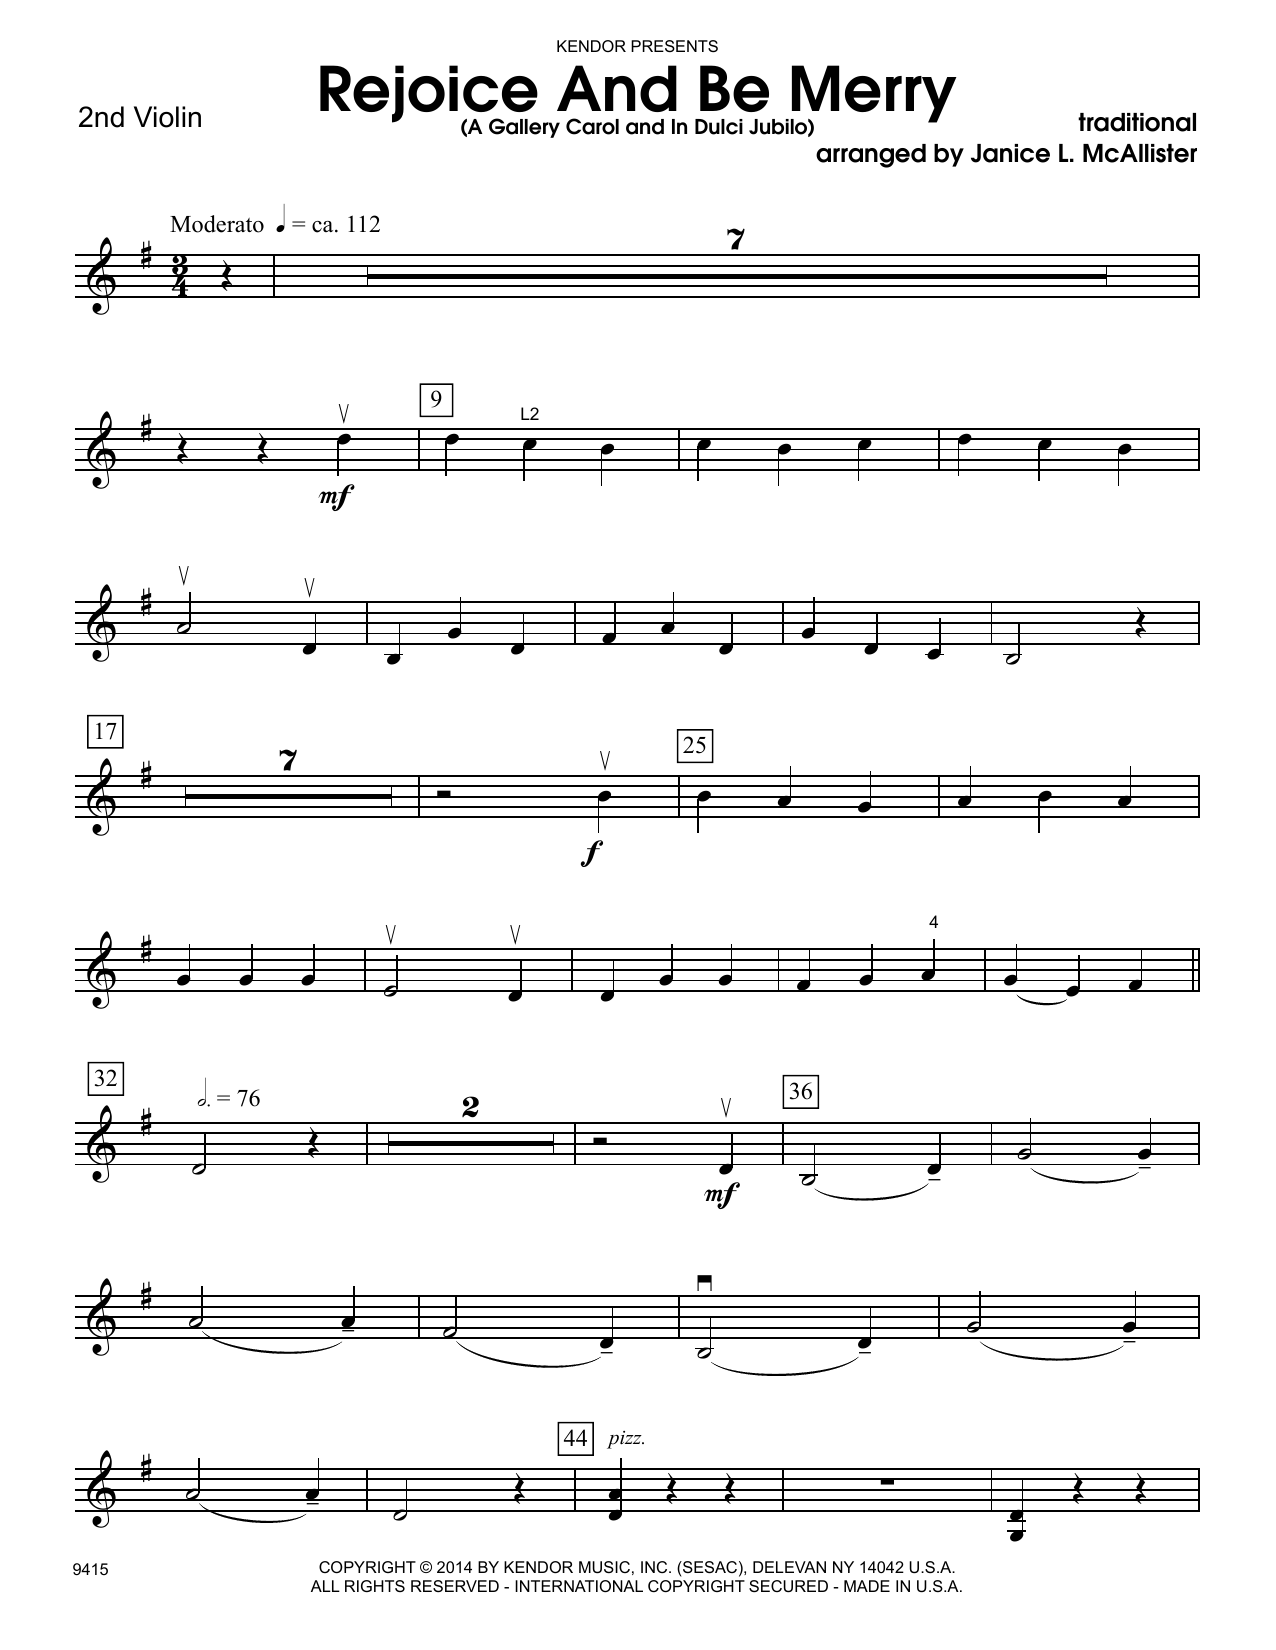 Janice L. McAllister Rejoice And Be Merry (A Gallery Carol and In Dulci Jubilo) - 2nd Violin sheet music notes and chords. Download Printable PDF.